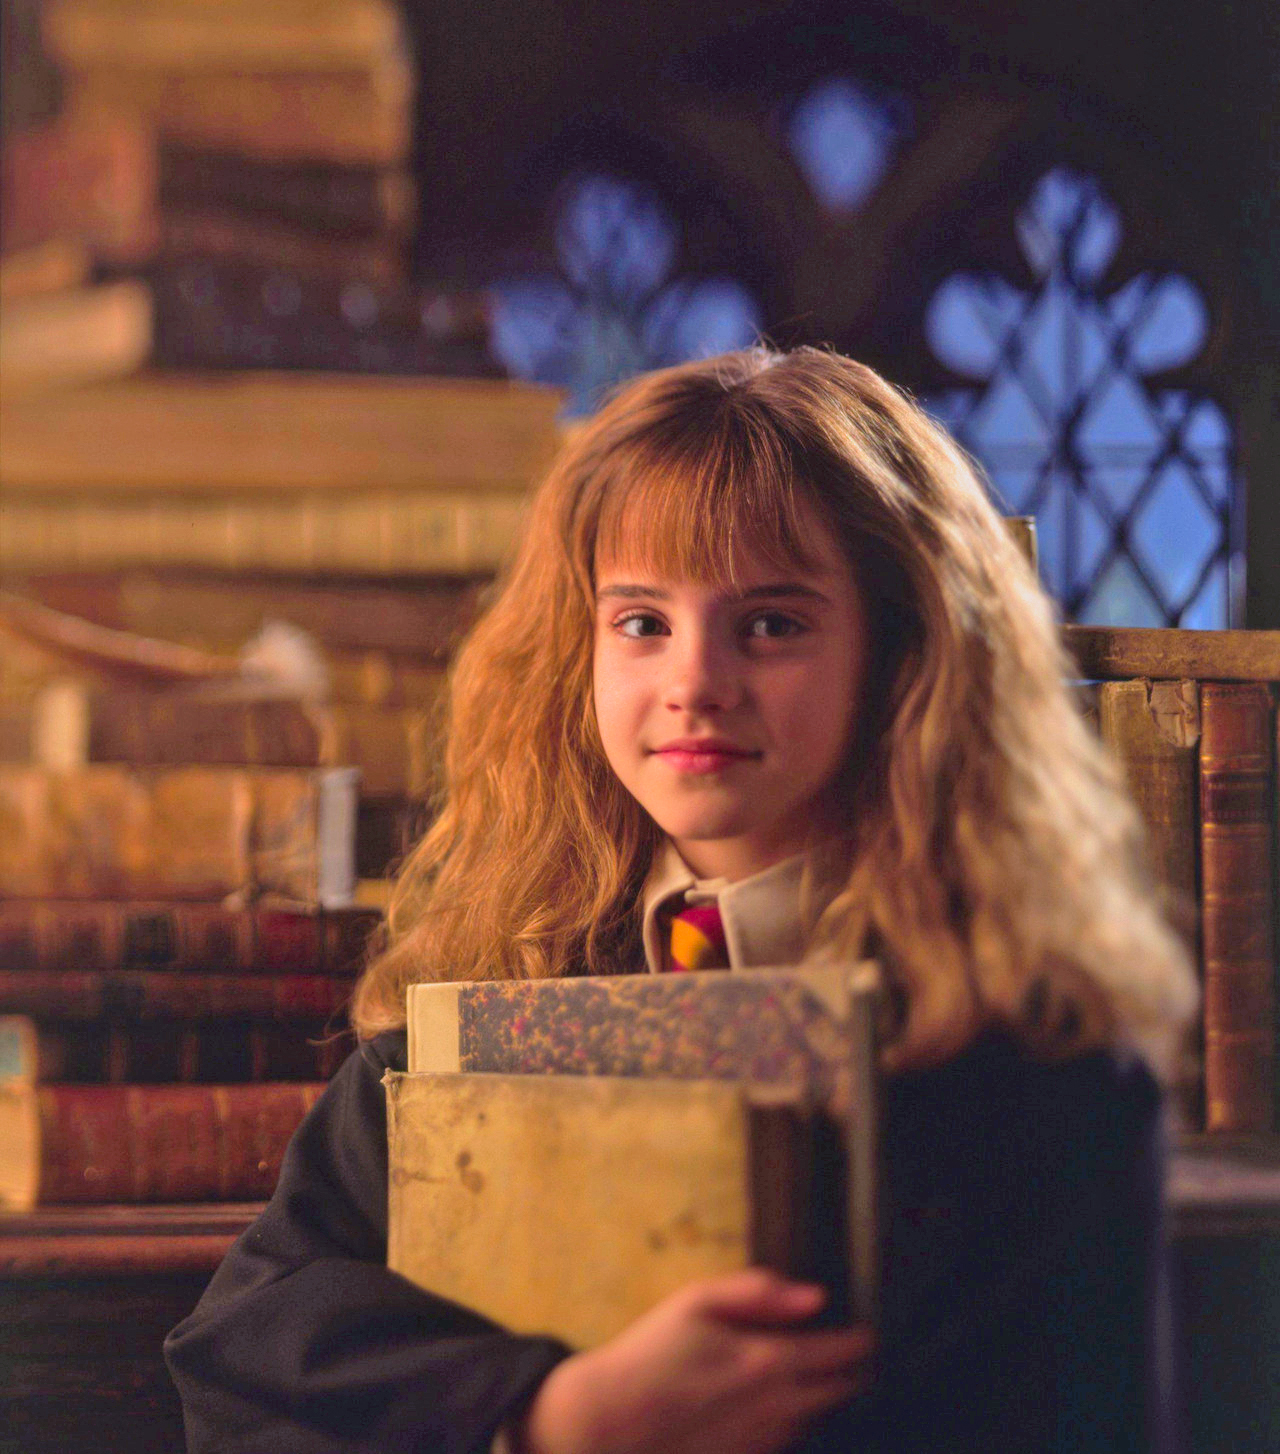 Hermione Granger Images Hermione Granger Hd Wallpaper And Background Photos 33706489